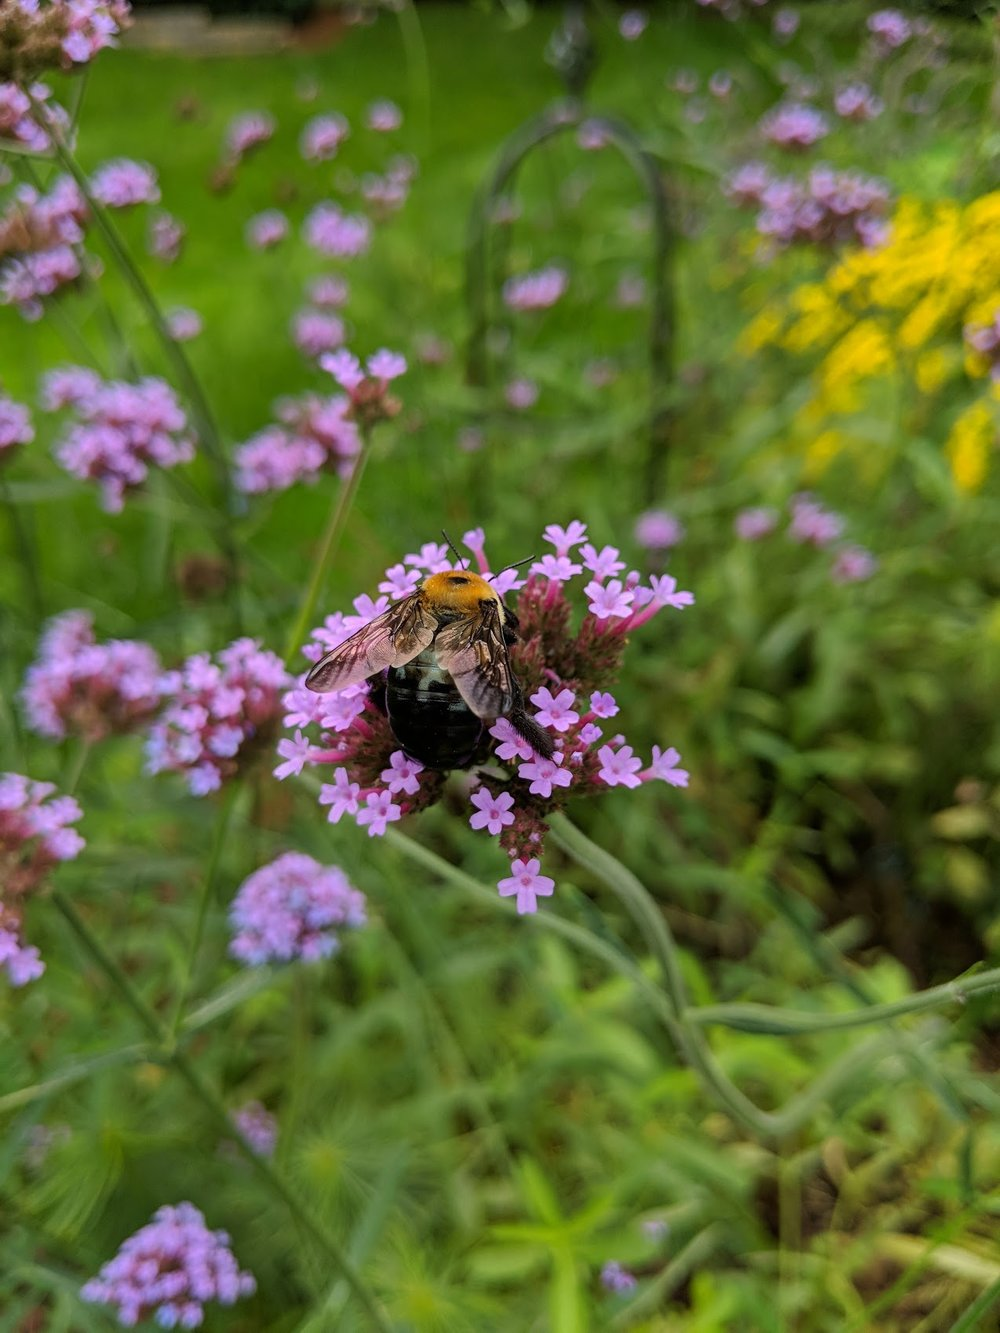 Huuuuge Carpenter Bee gorges on Verbena nectar